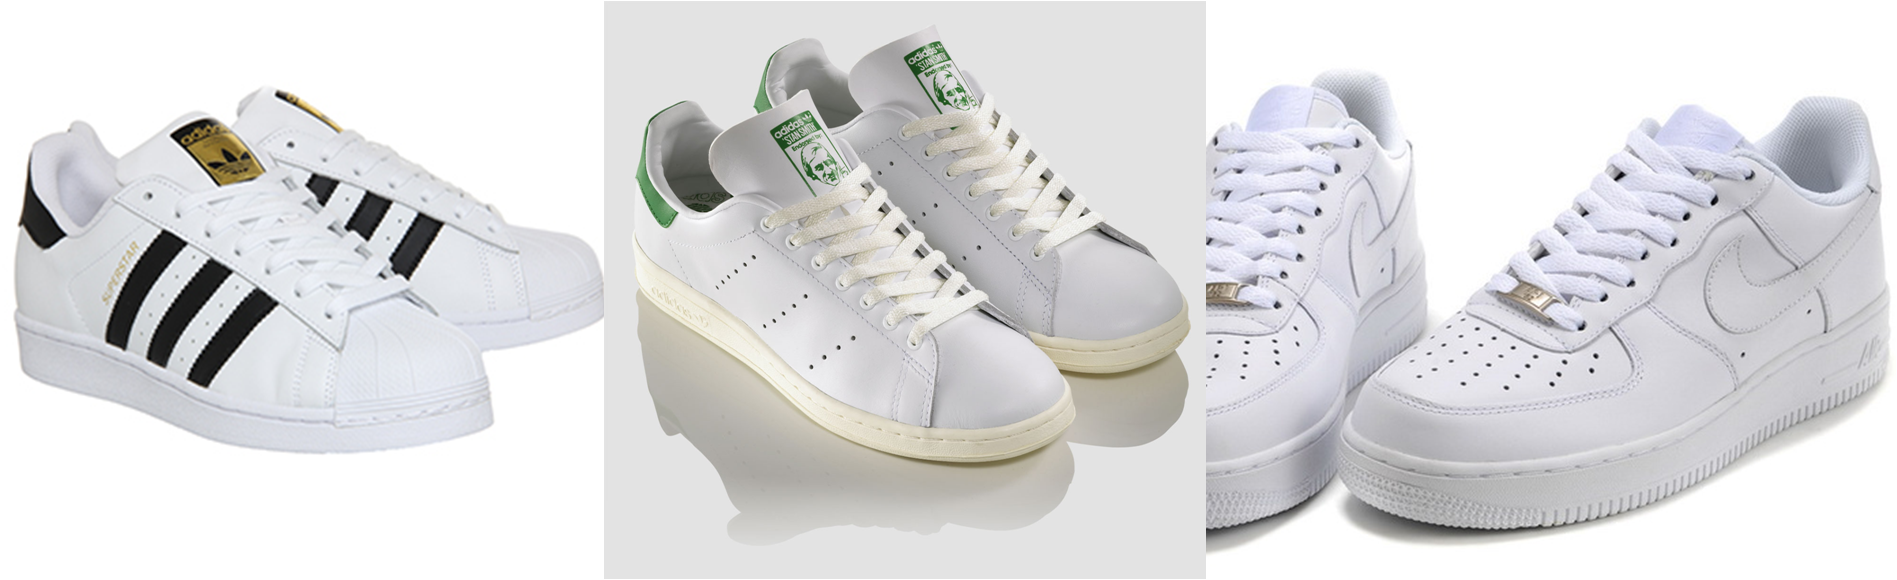 52593aba4cb ... france white trainers look the best adidas superstars adidas stan  smiths nike air force df150 6e822